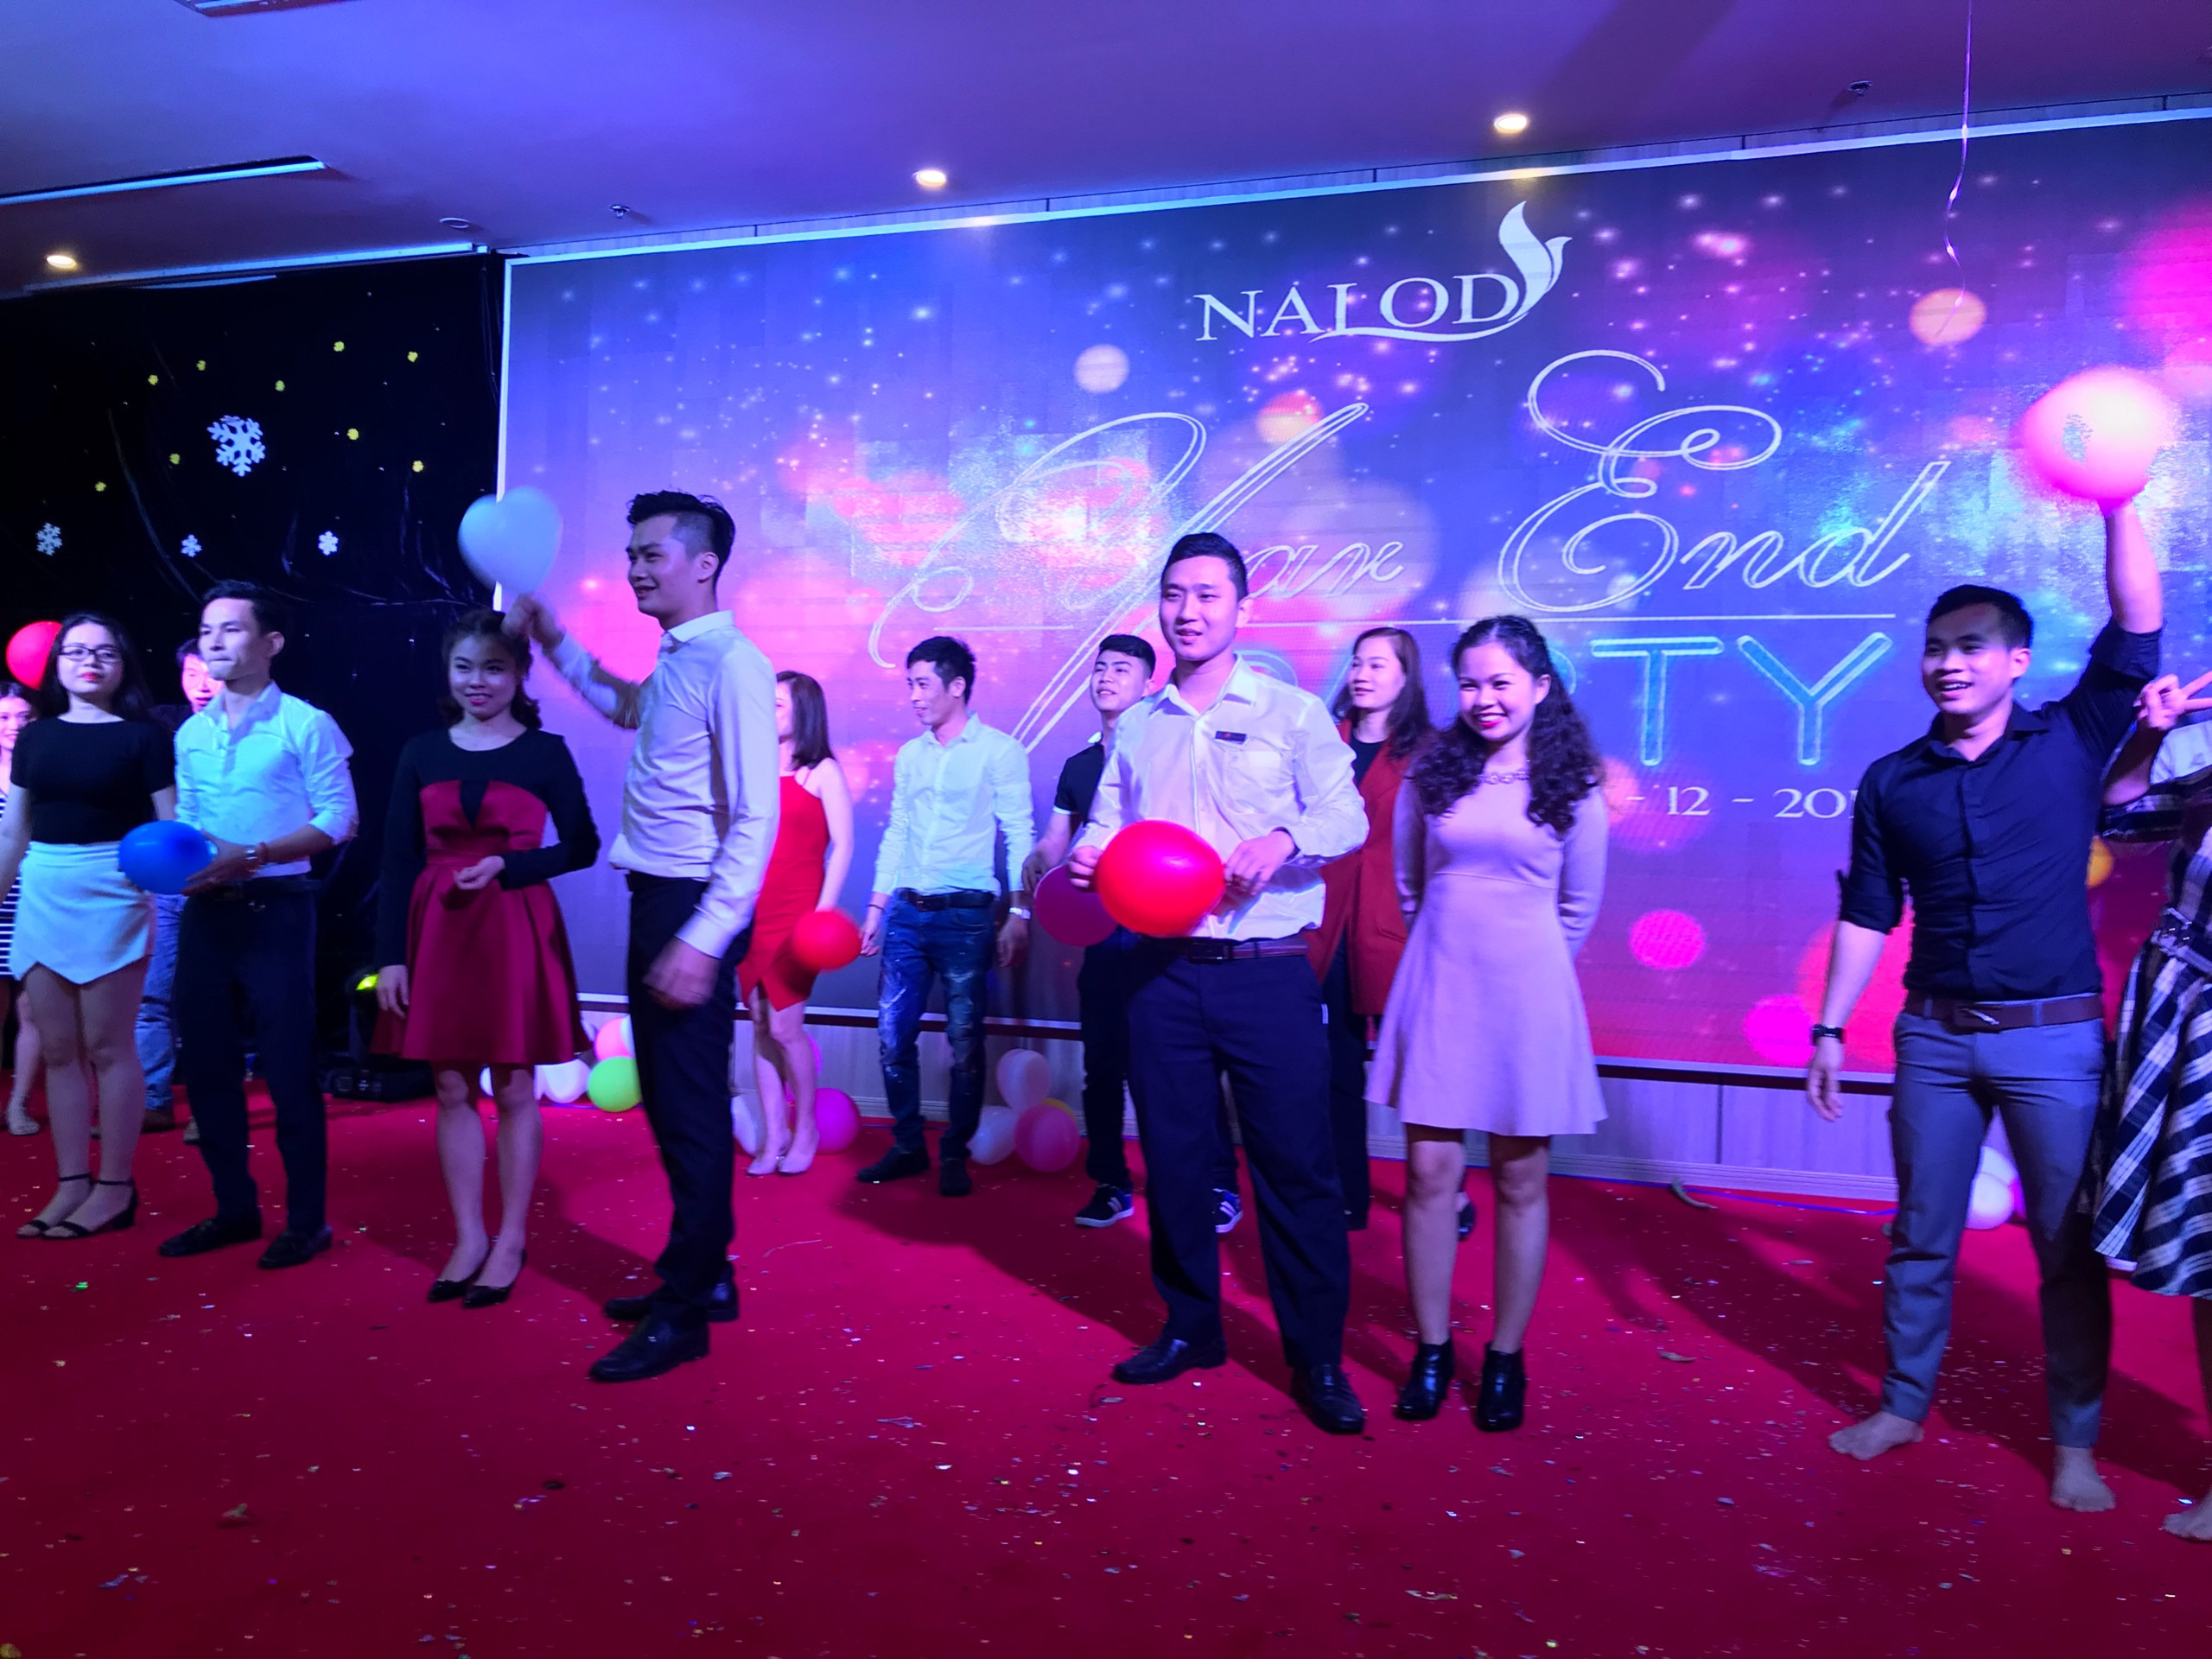 2017 Year End Staff Party The Nalod Danang